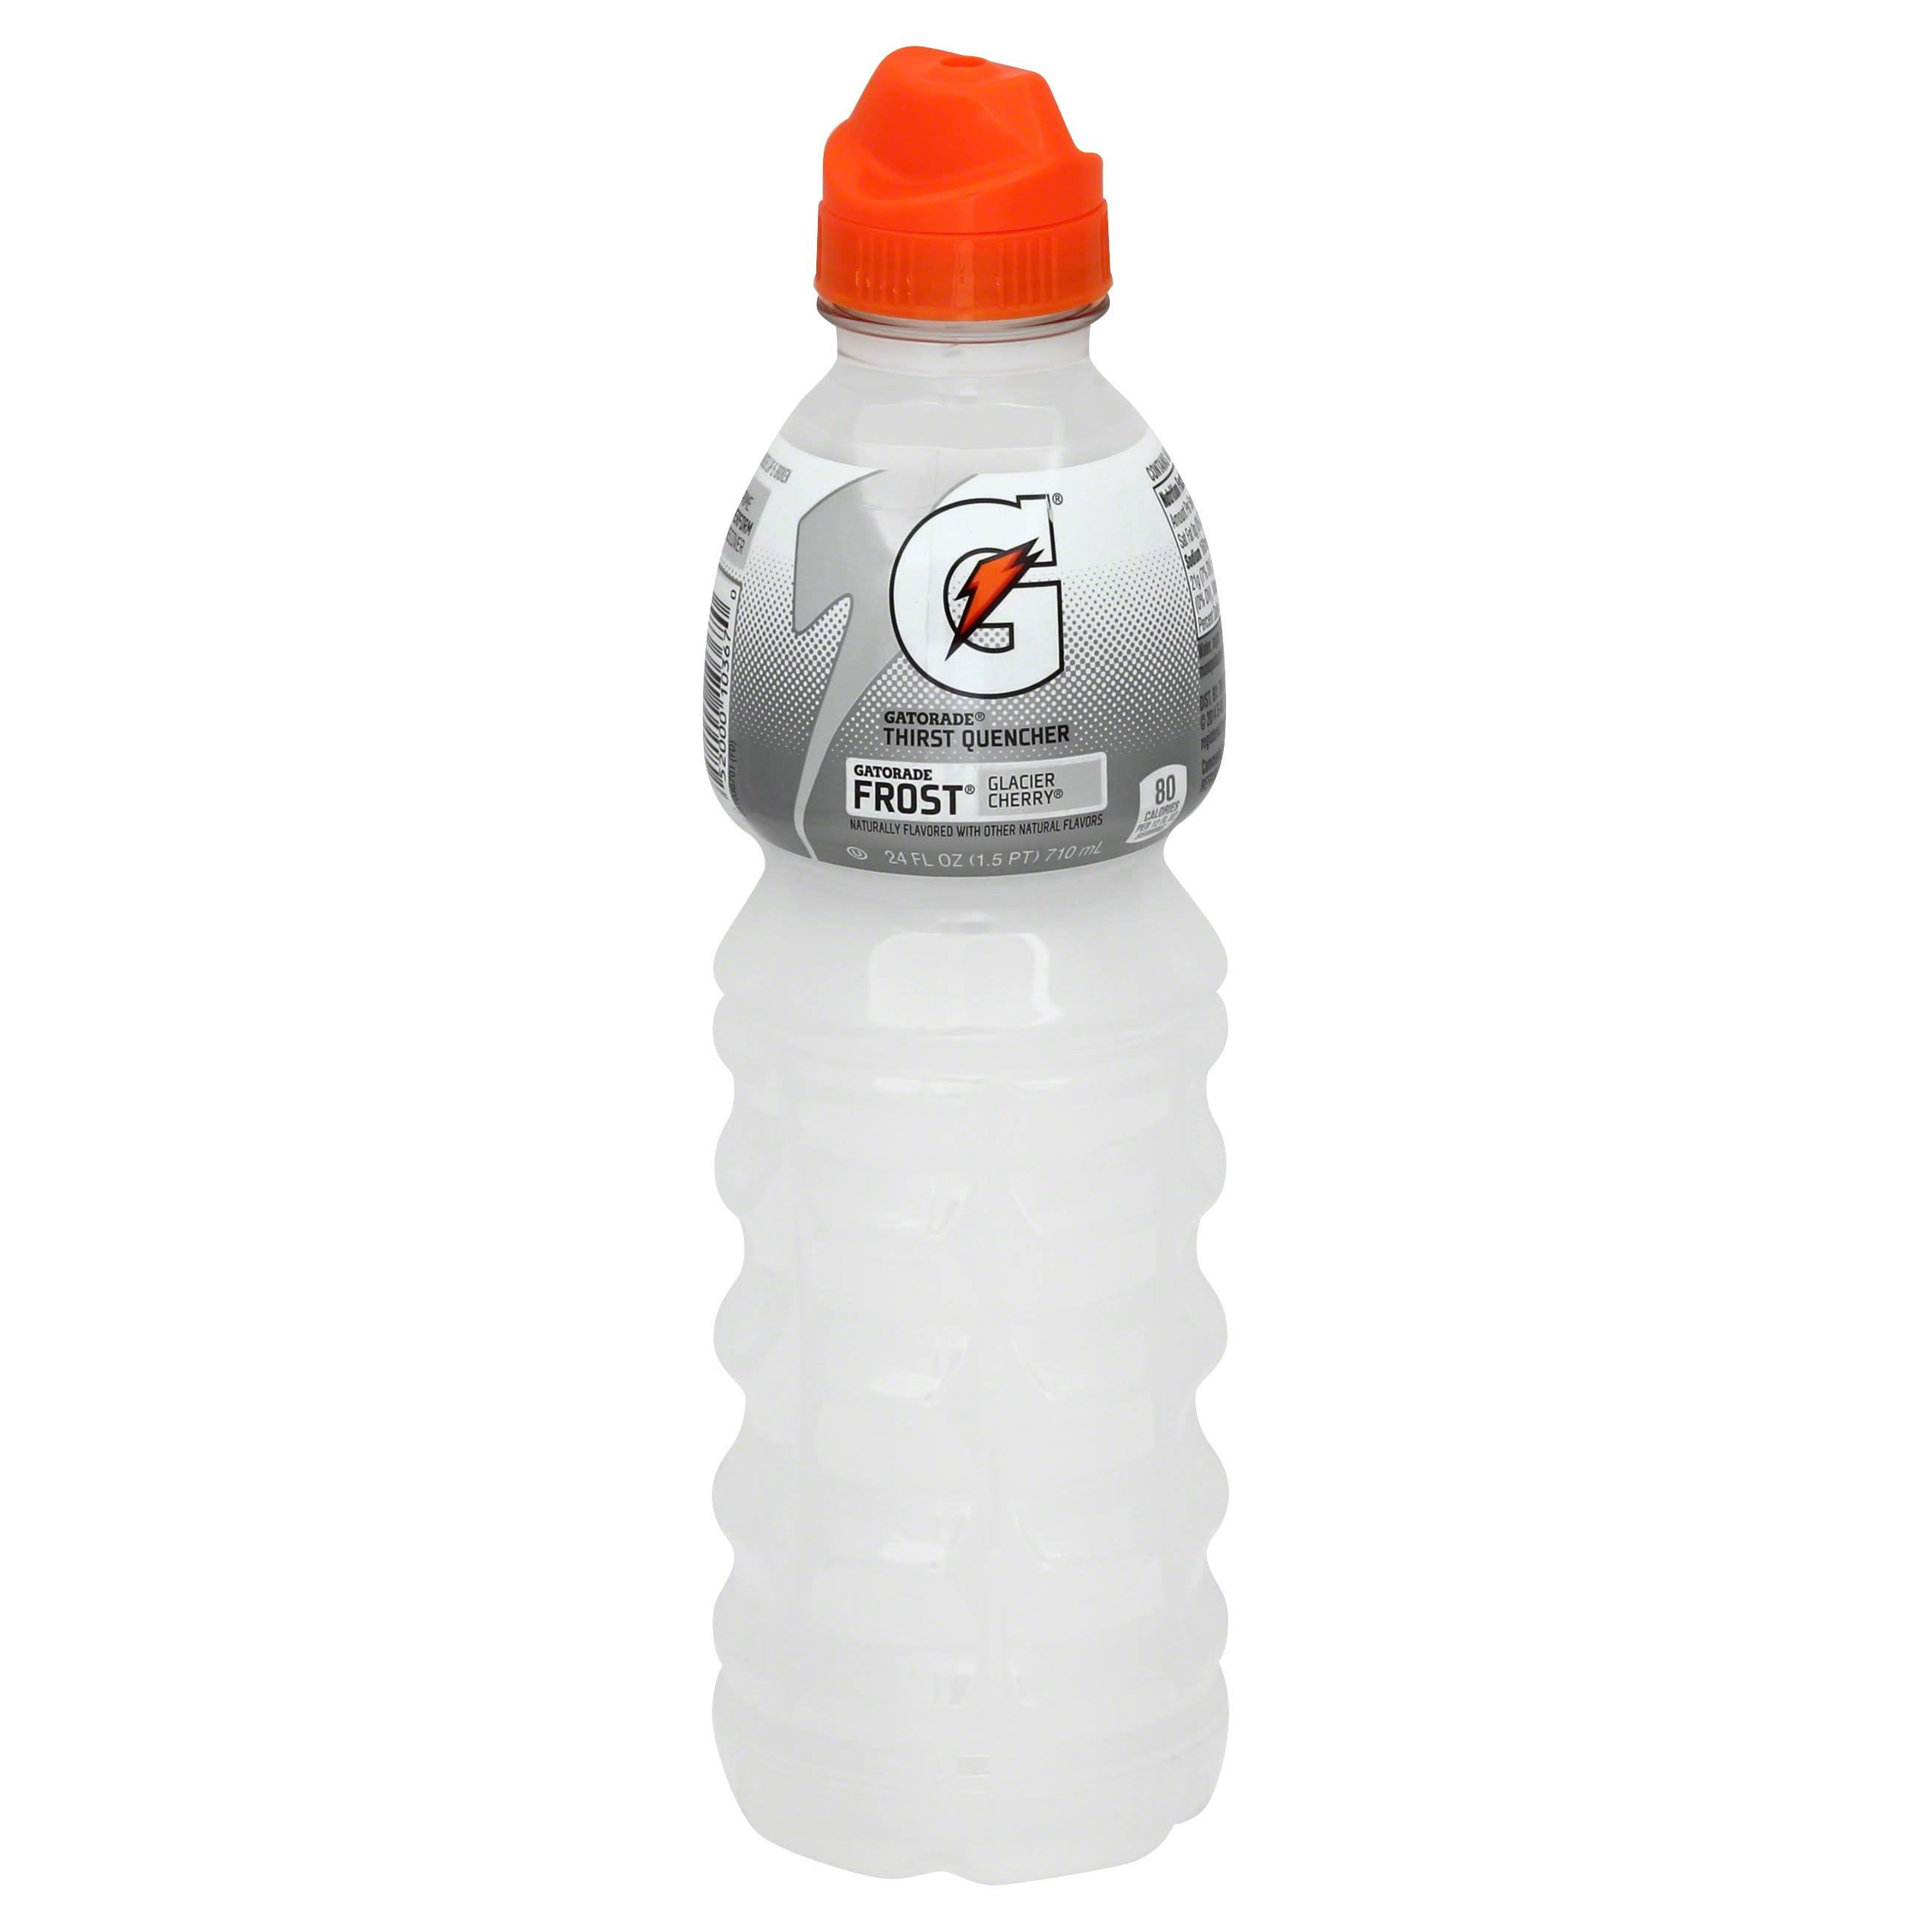 Gatorade Frost Glacier Cherry Thirst Quencher 24 Fld Oz Plastic Bottle